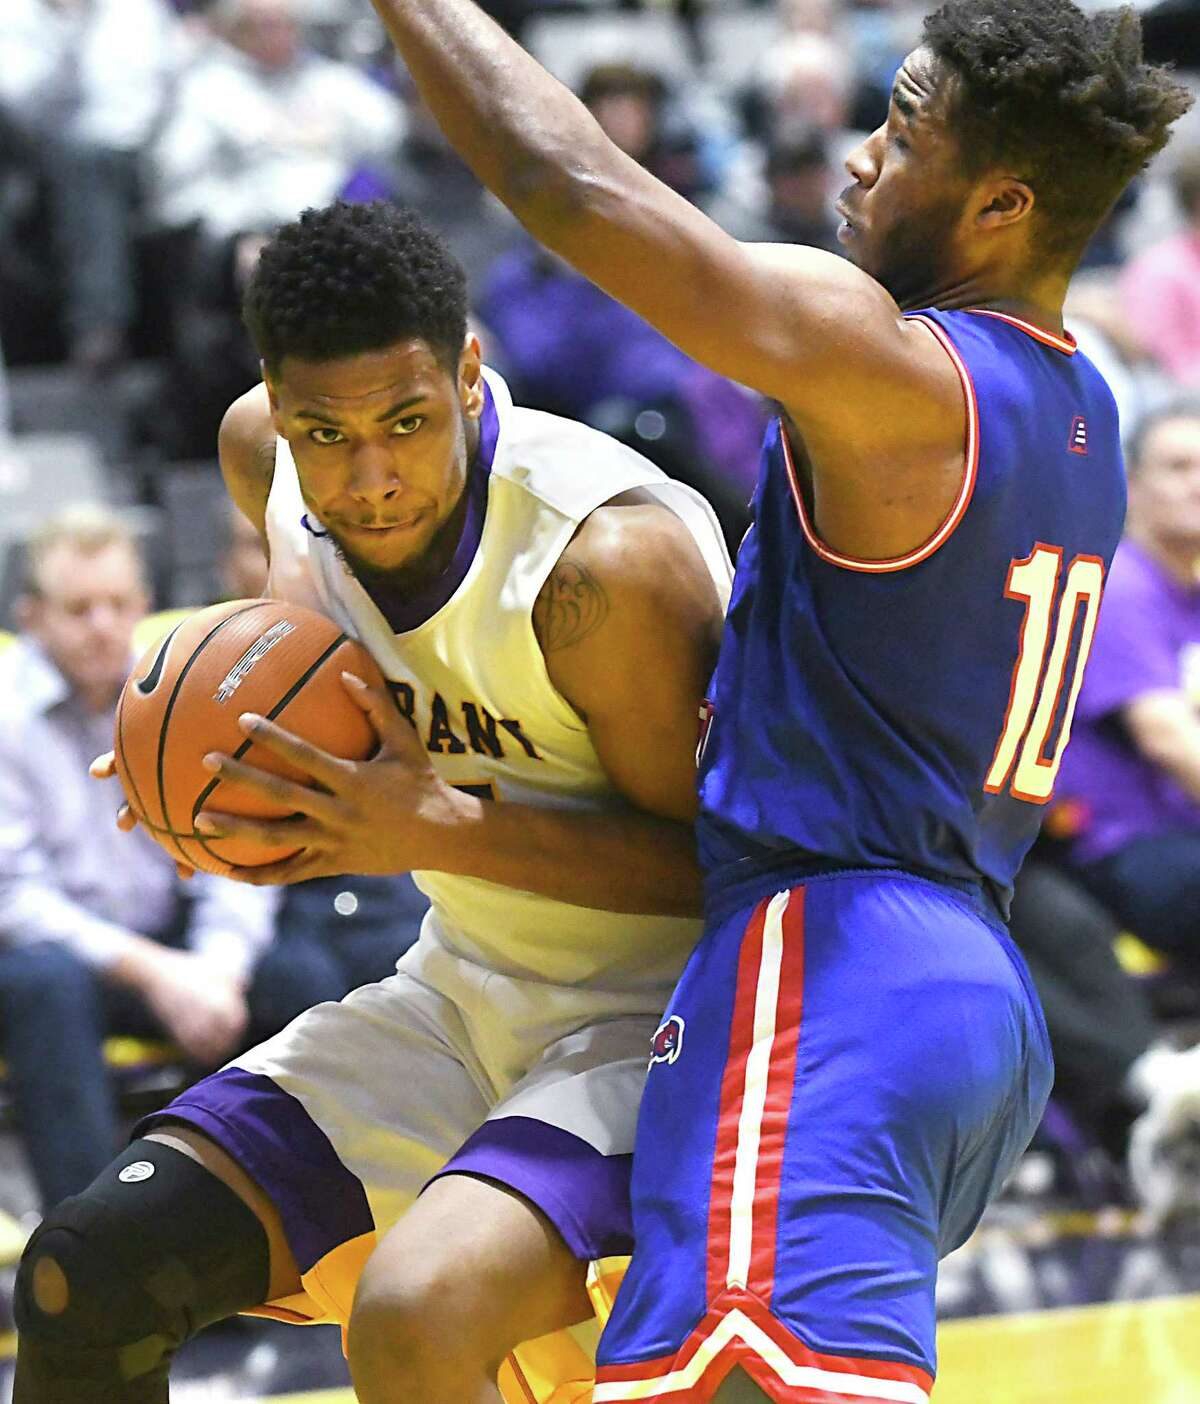 University at Albany's Alex Foster drives to the basket guarded by Lowell's Jahad Thomas during a basketball game at SEFCU Arena on Thursday, Jan. 18, 2018 in Albany, N.Y. (Lori Van Buren/Times Union)